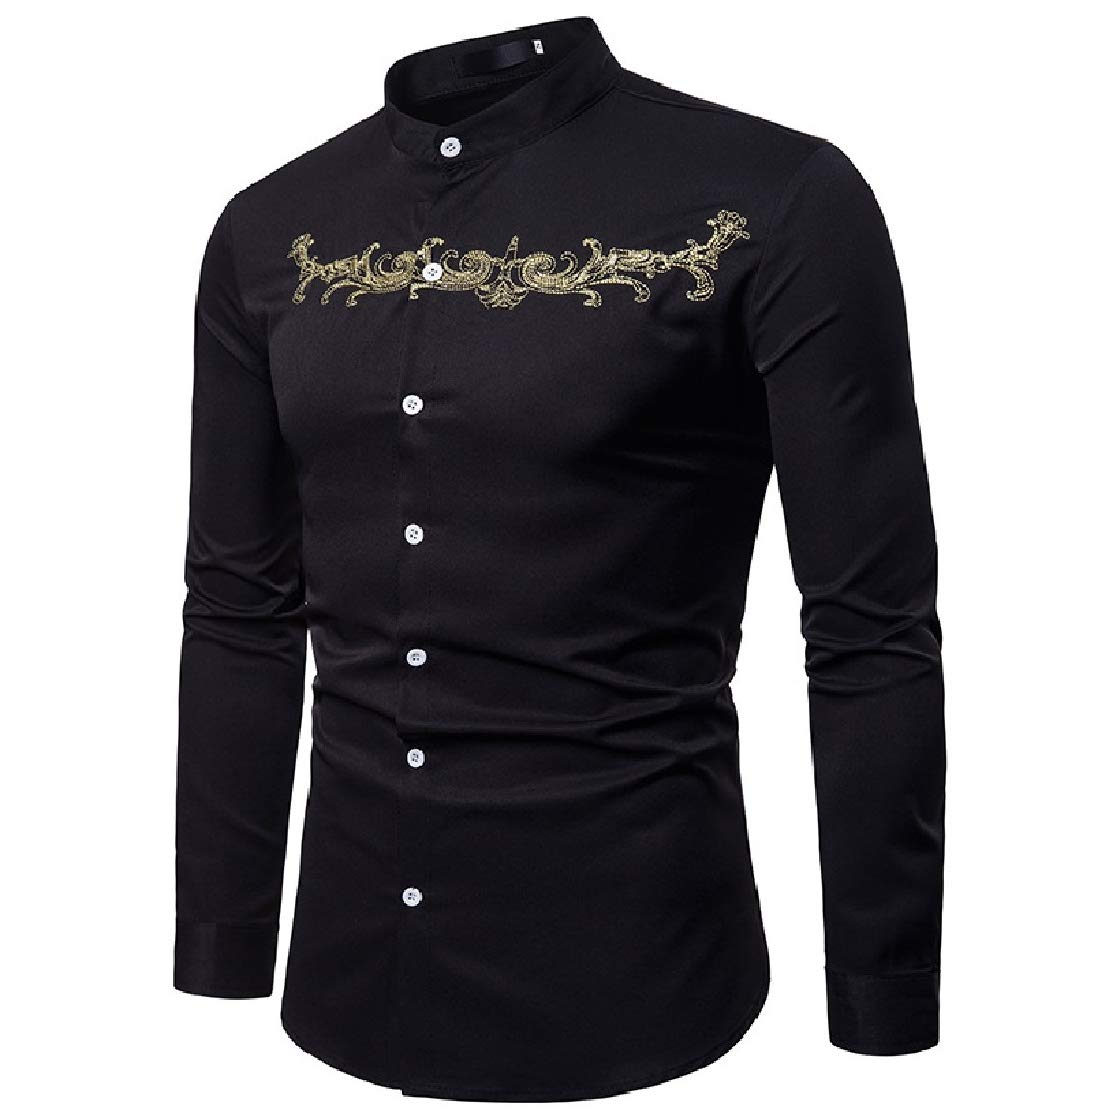 YUNY Mens Stand Collar Court Style Long Sleeve Casual Embroidered Western Shirt Black L